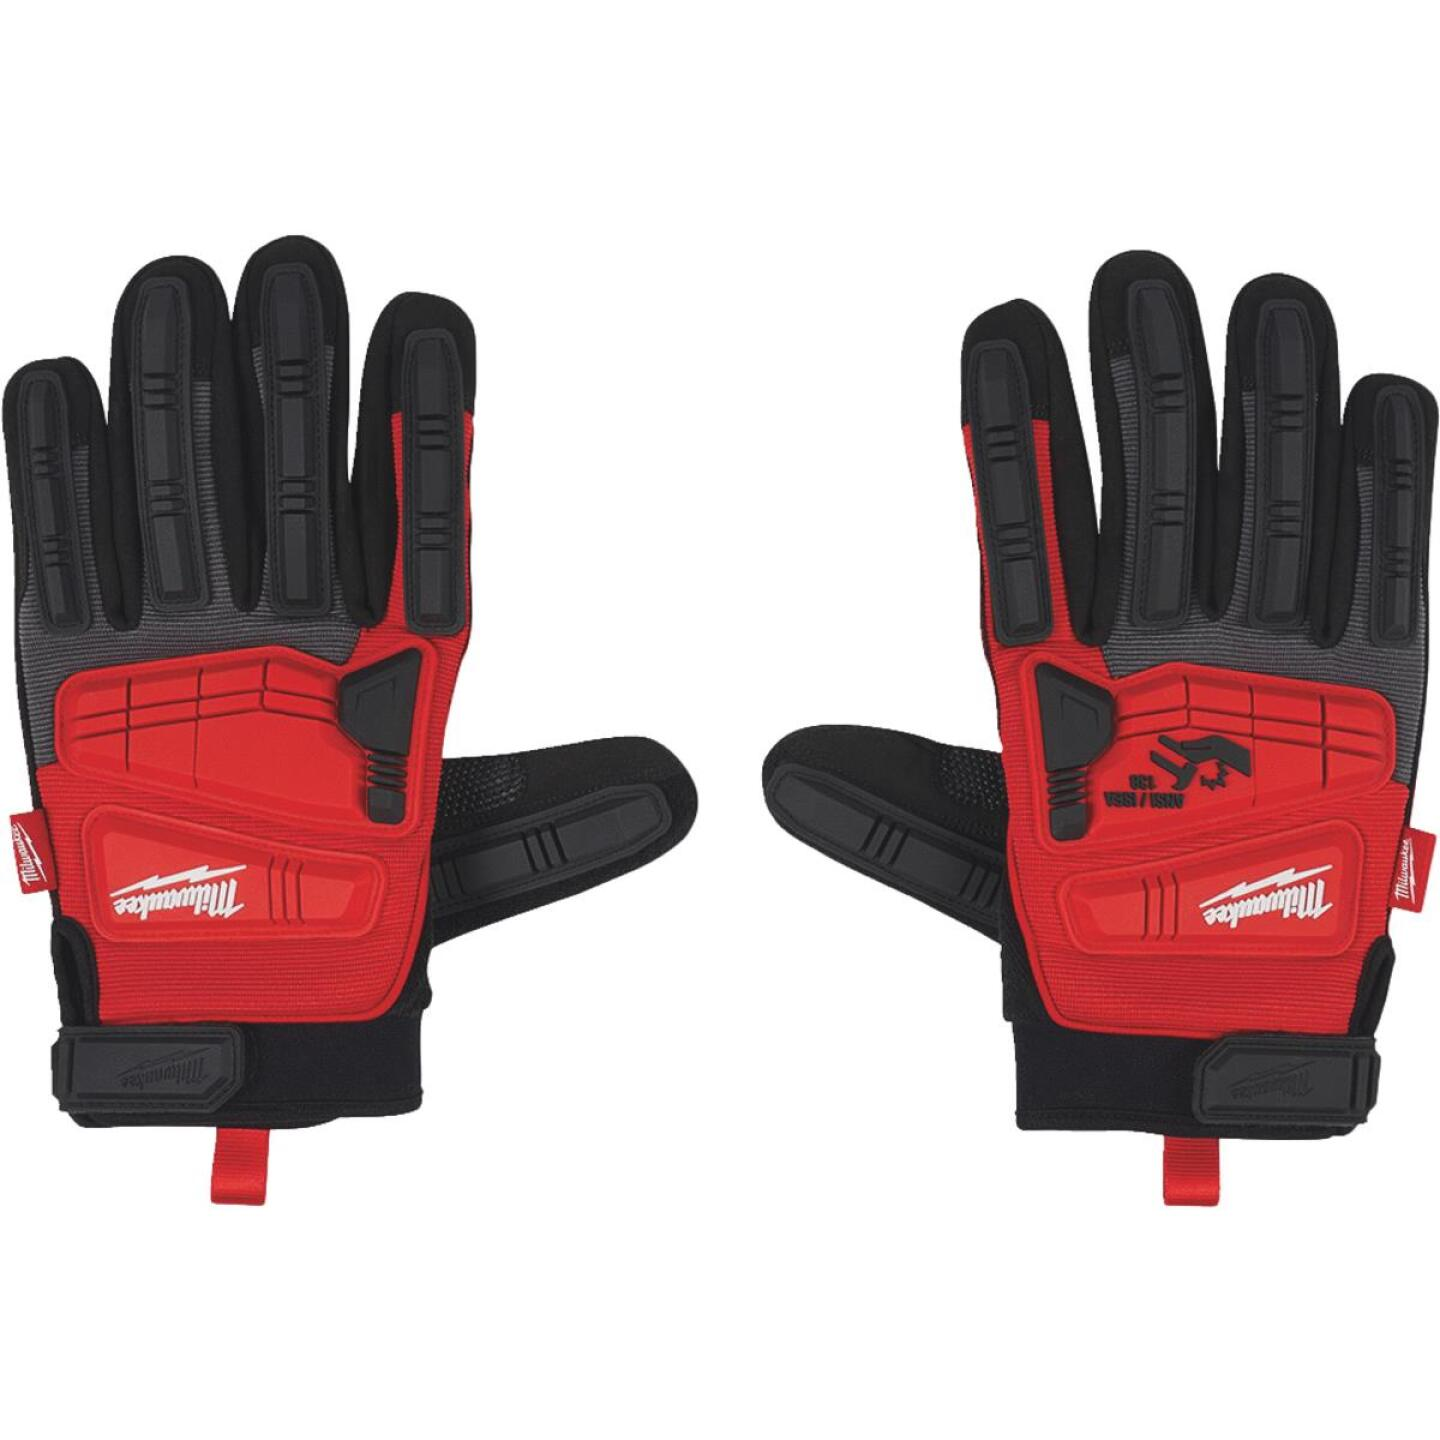 Milwaukee Men's XL Synthetic Leather Impact Demolition Glove Image 3